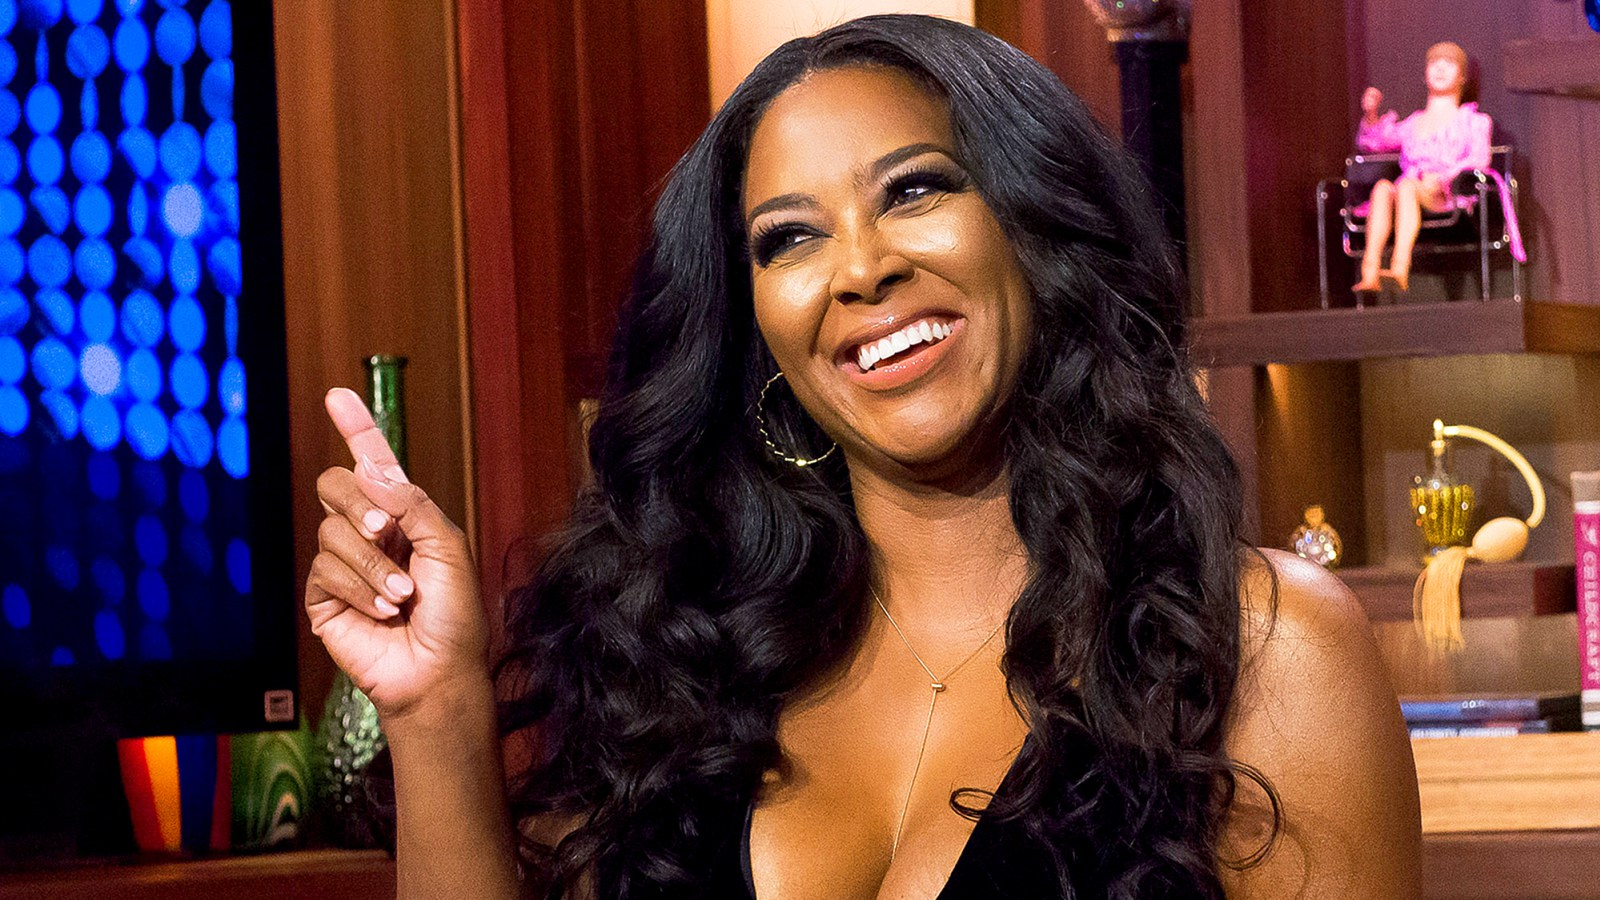 Kenya Moore's Hourglass Figure Has Fans In Awe - Check Out Her Latest Look Which Has People Praising Her